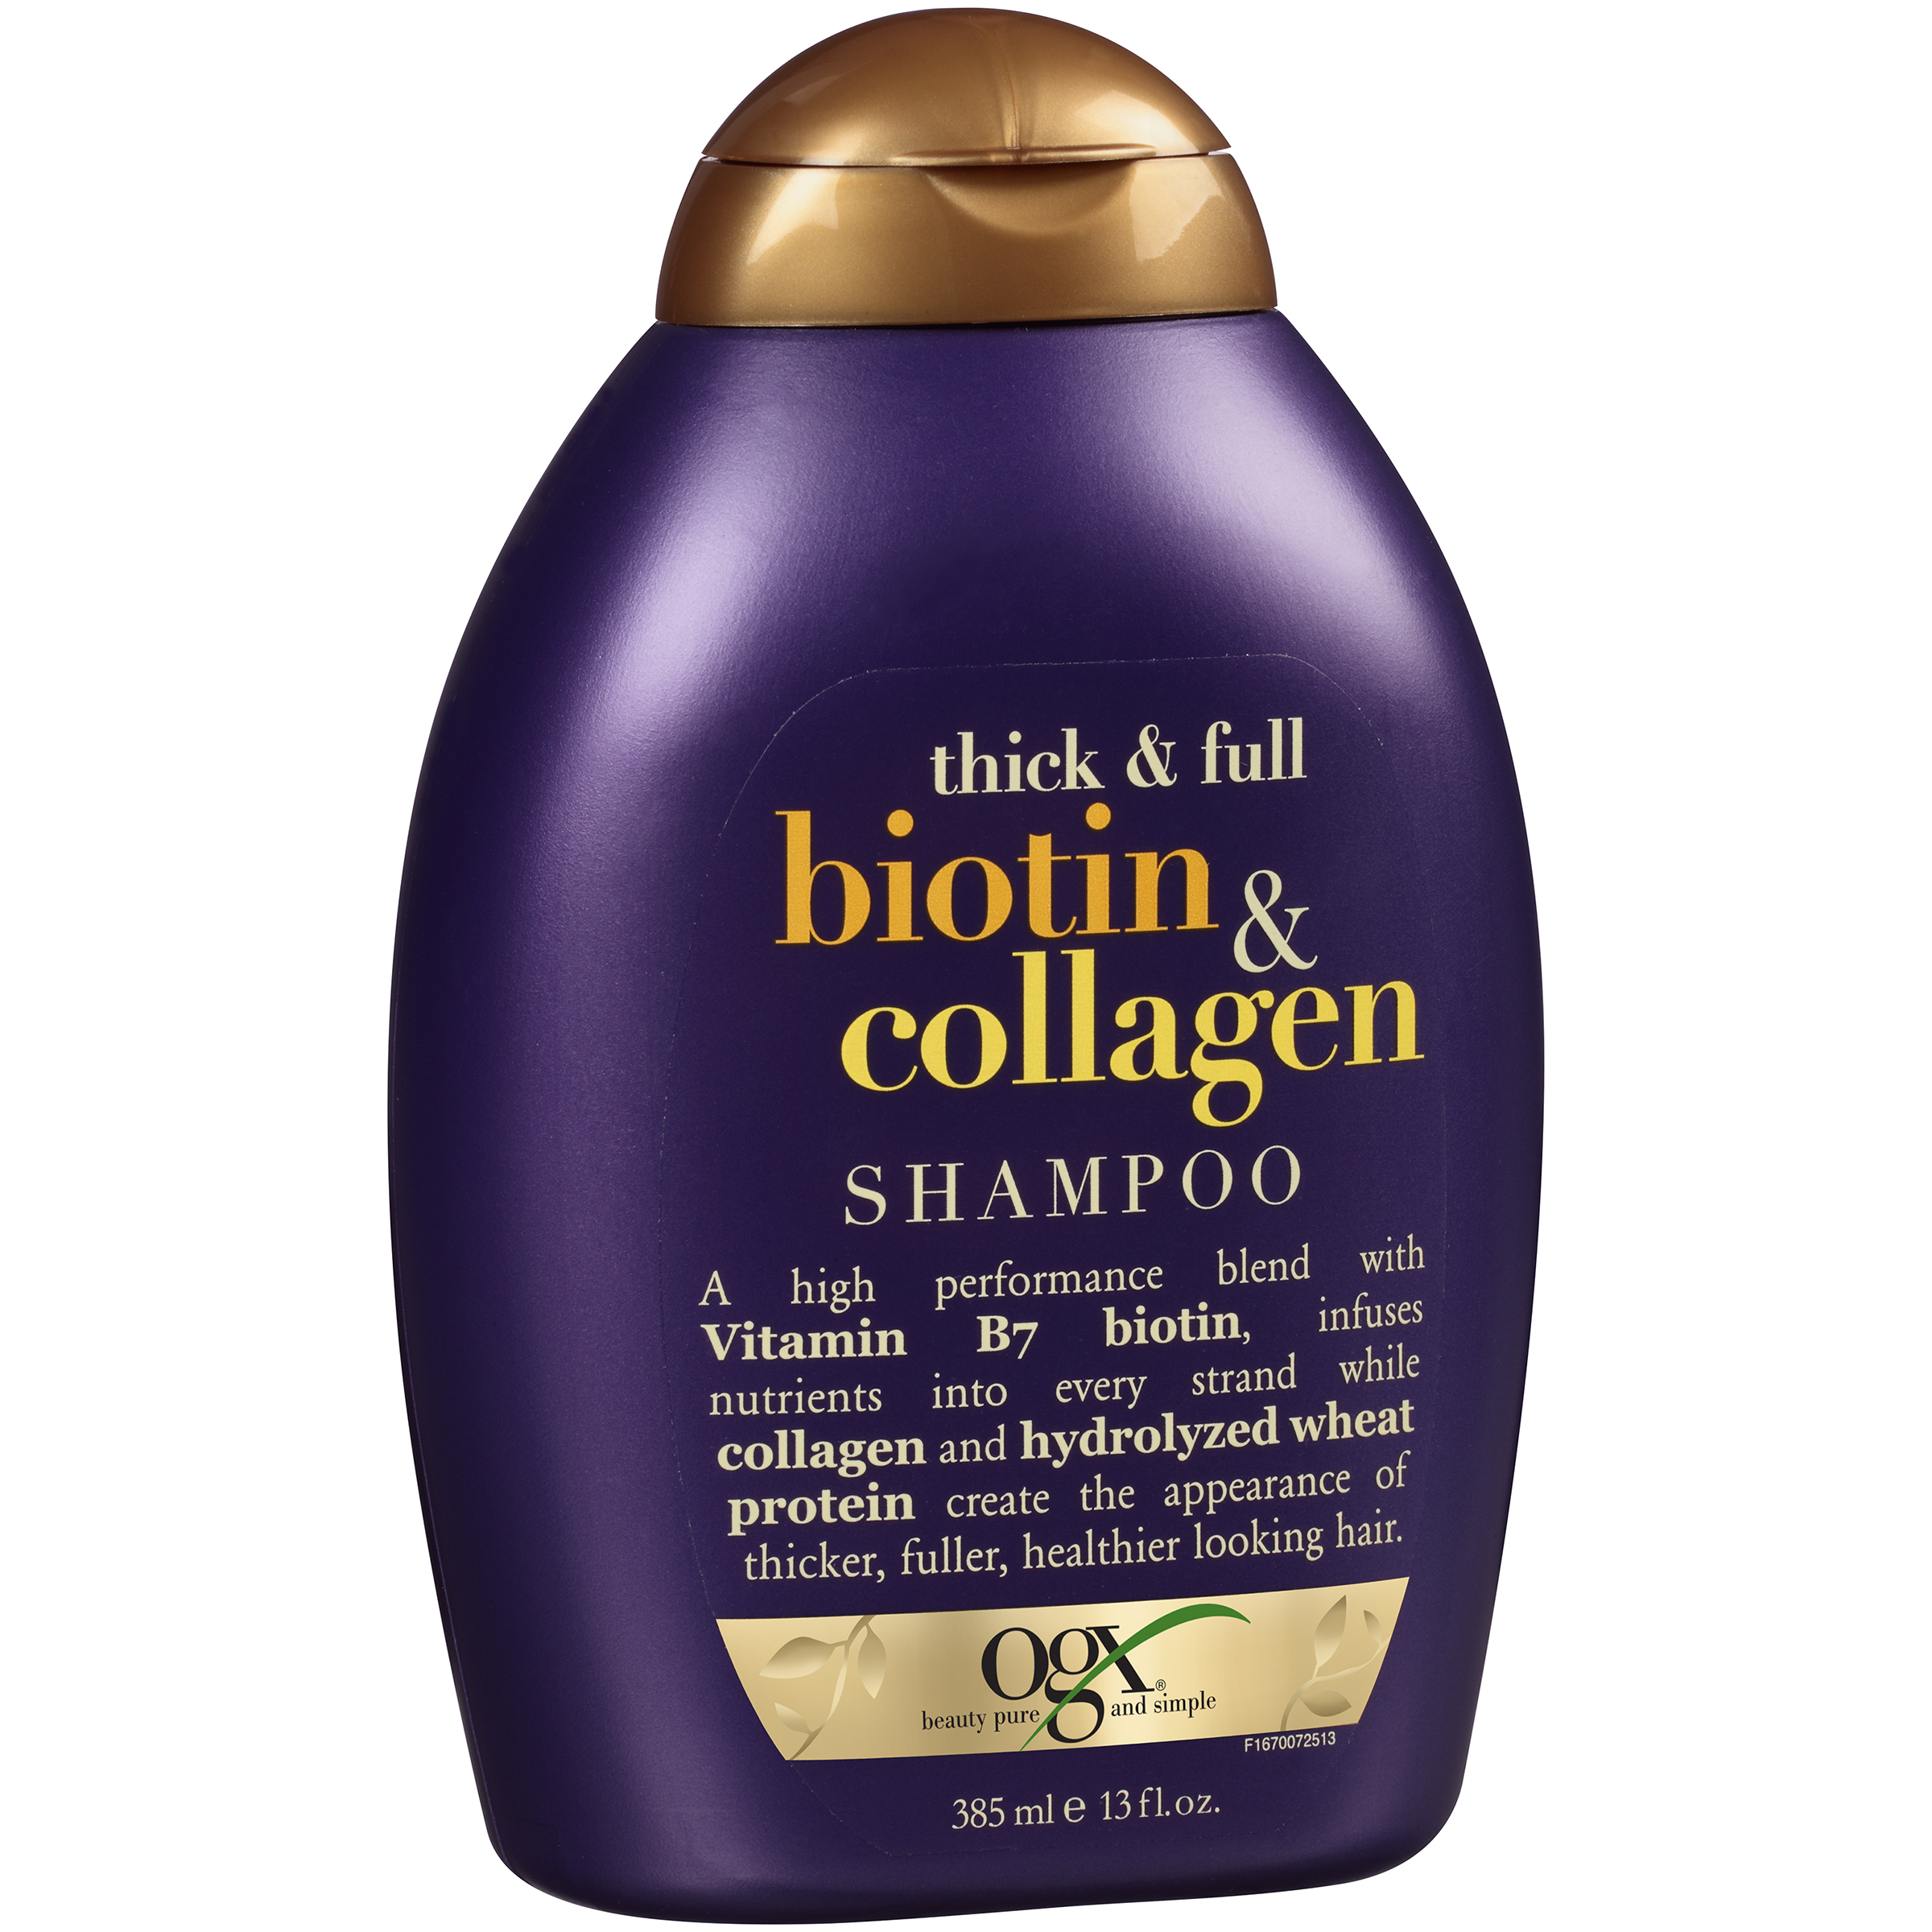 Ogx® Thick & Full Biotin & Collagen Shampoo 13 fl. oz. Squeeze Bottle